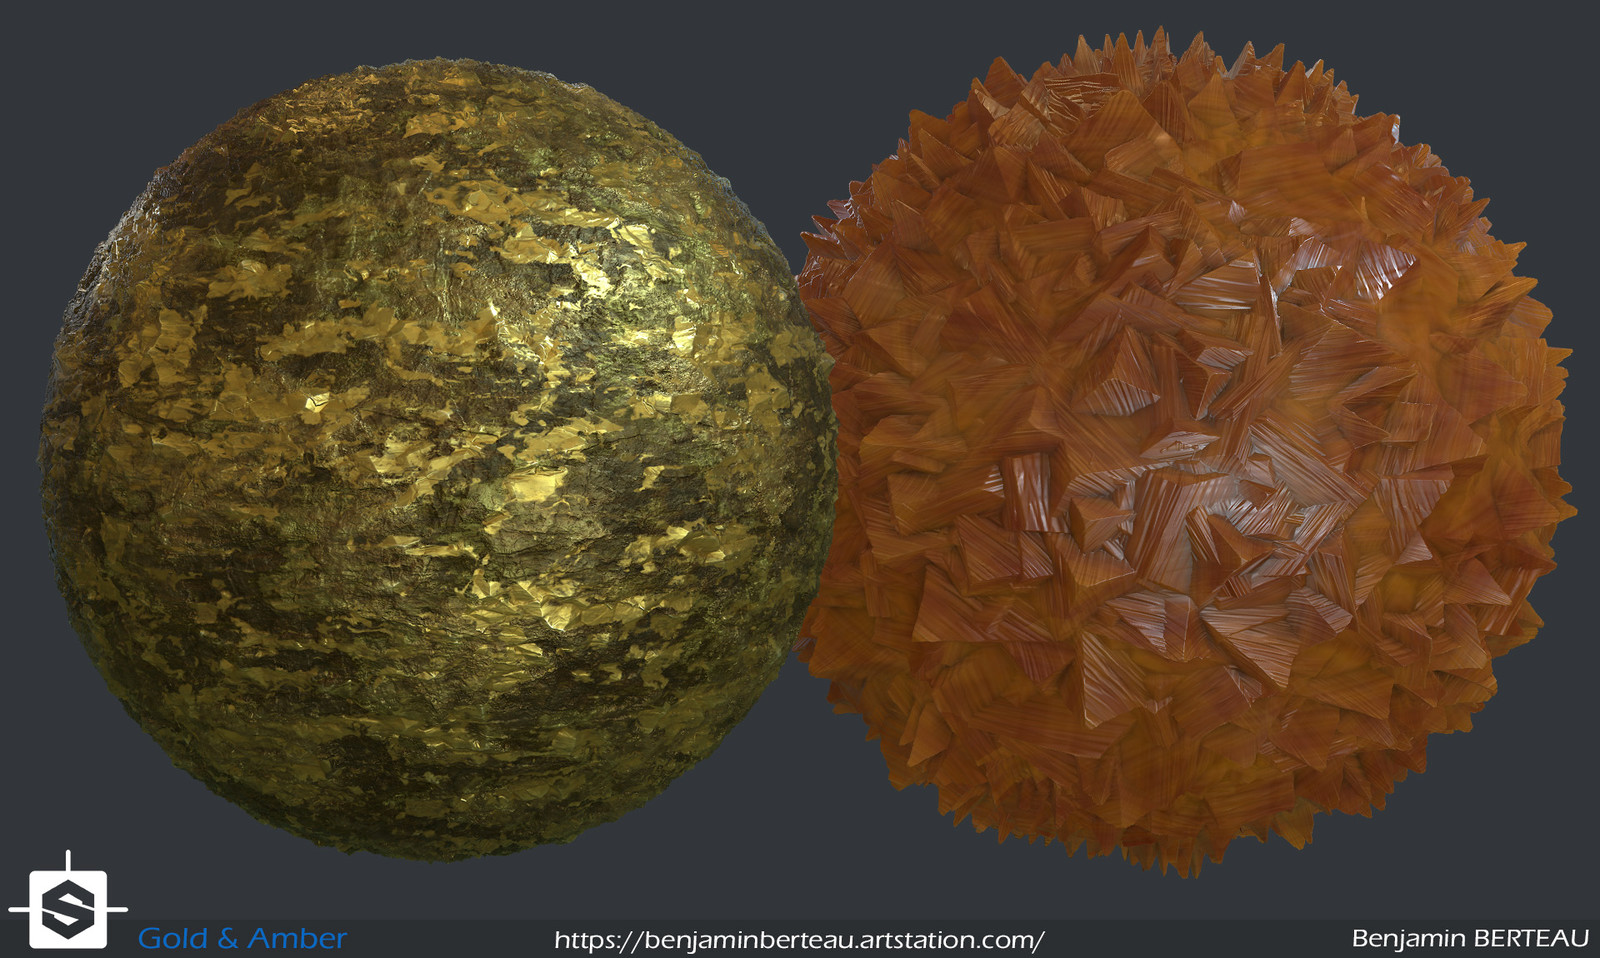 Ore and amber ore